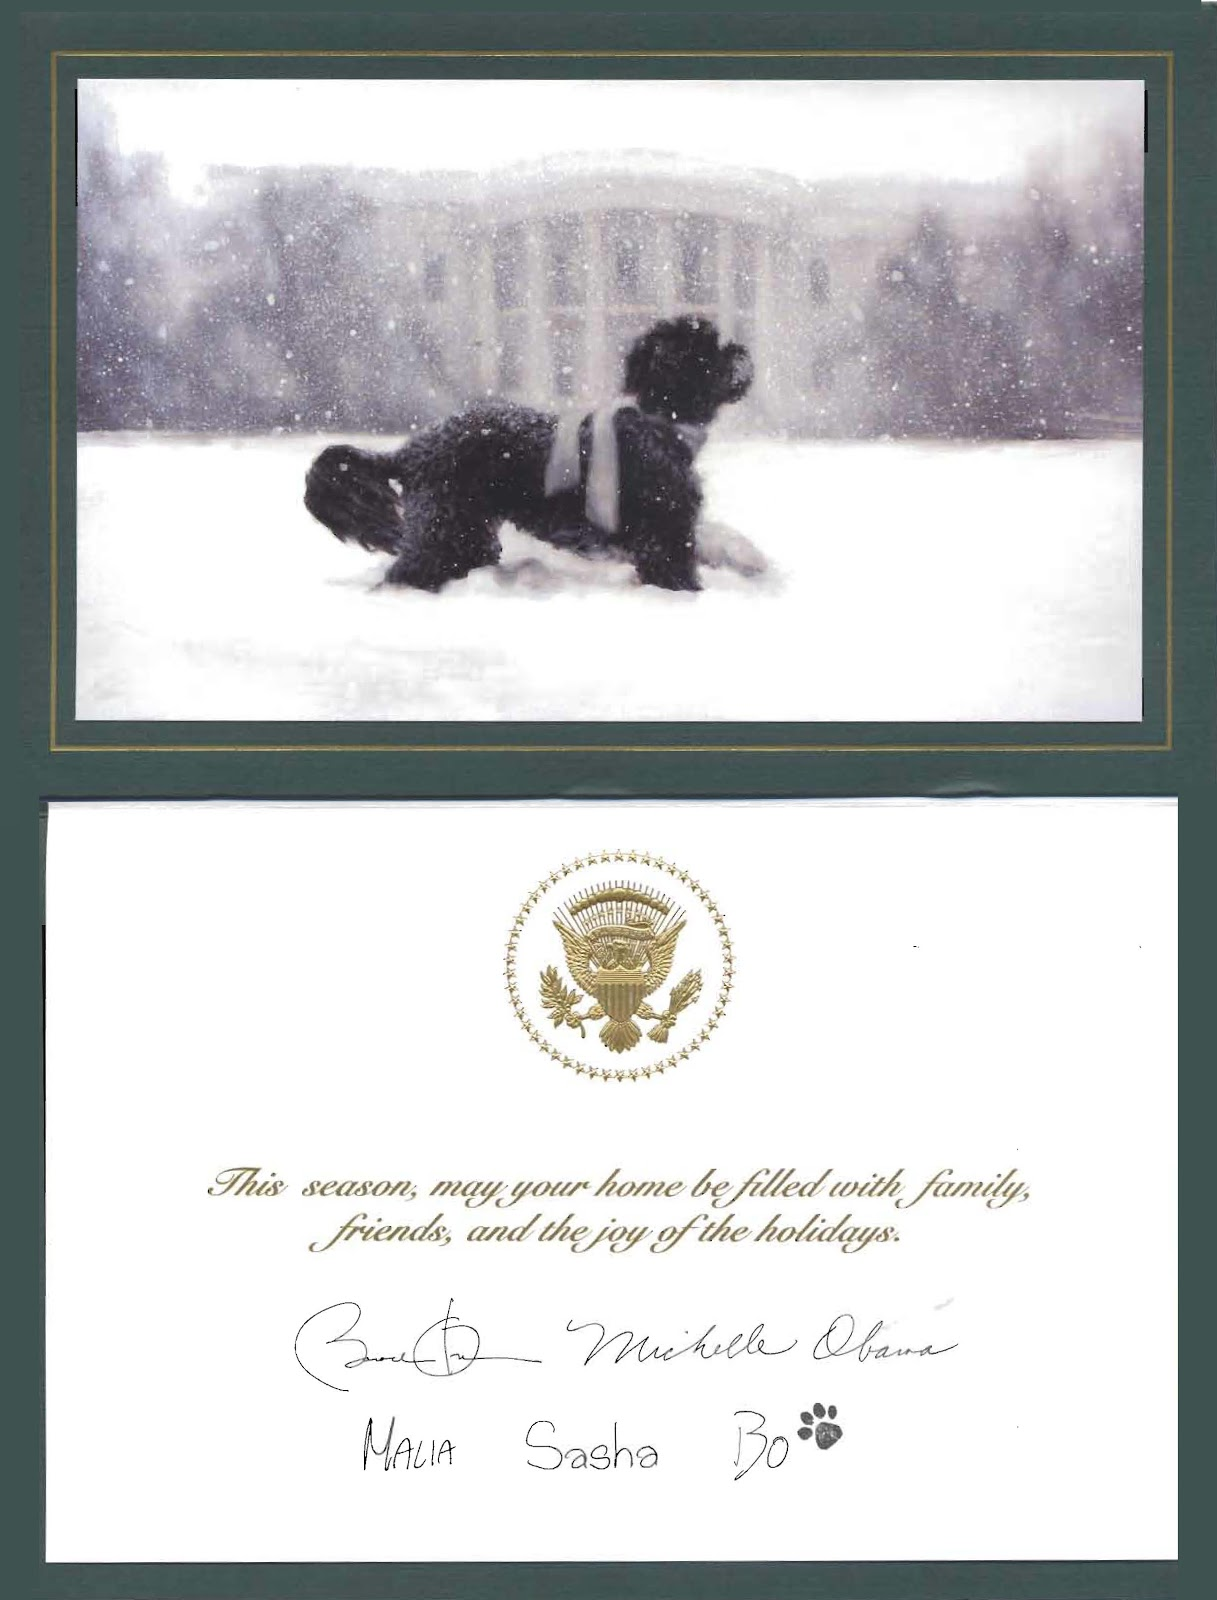 Obama holiday card